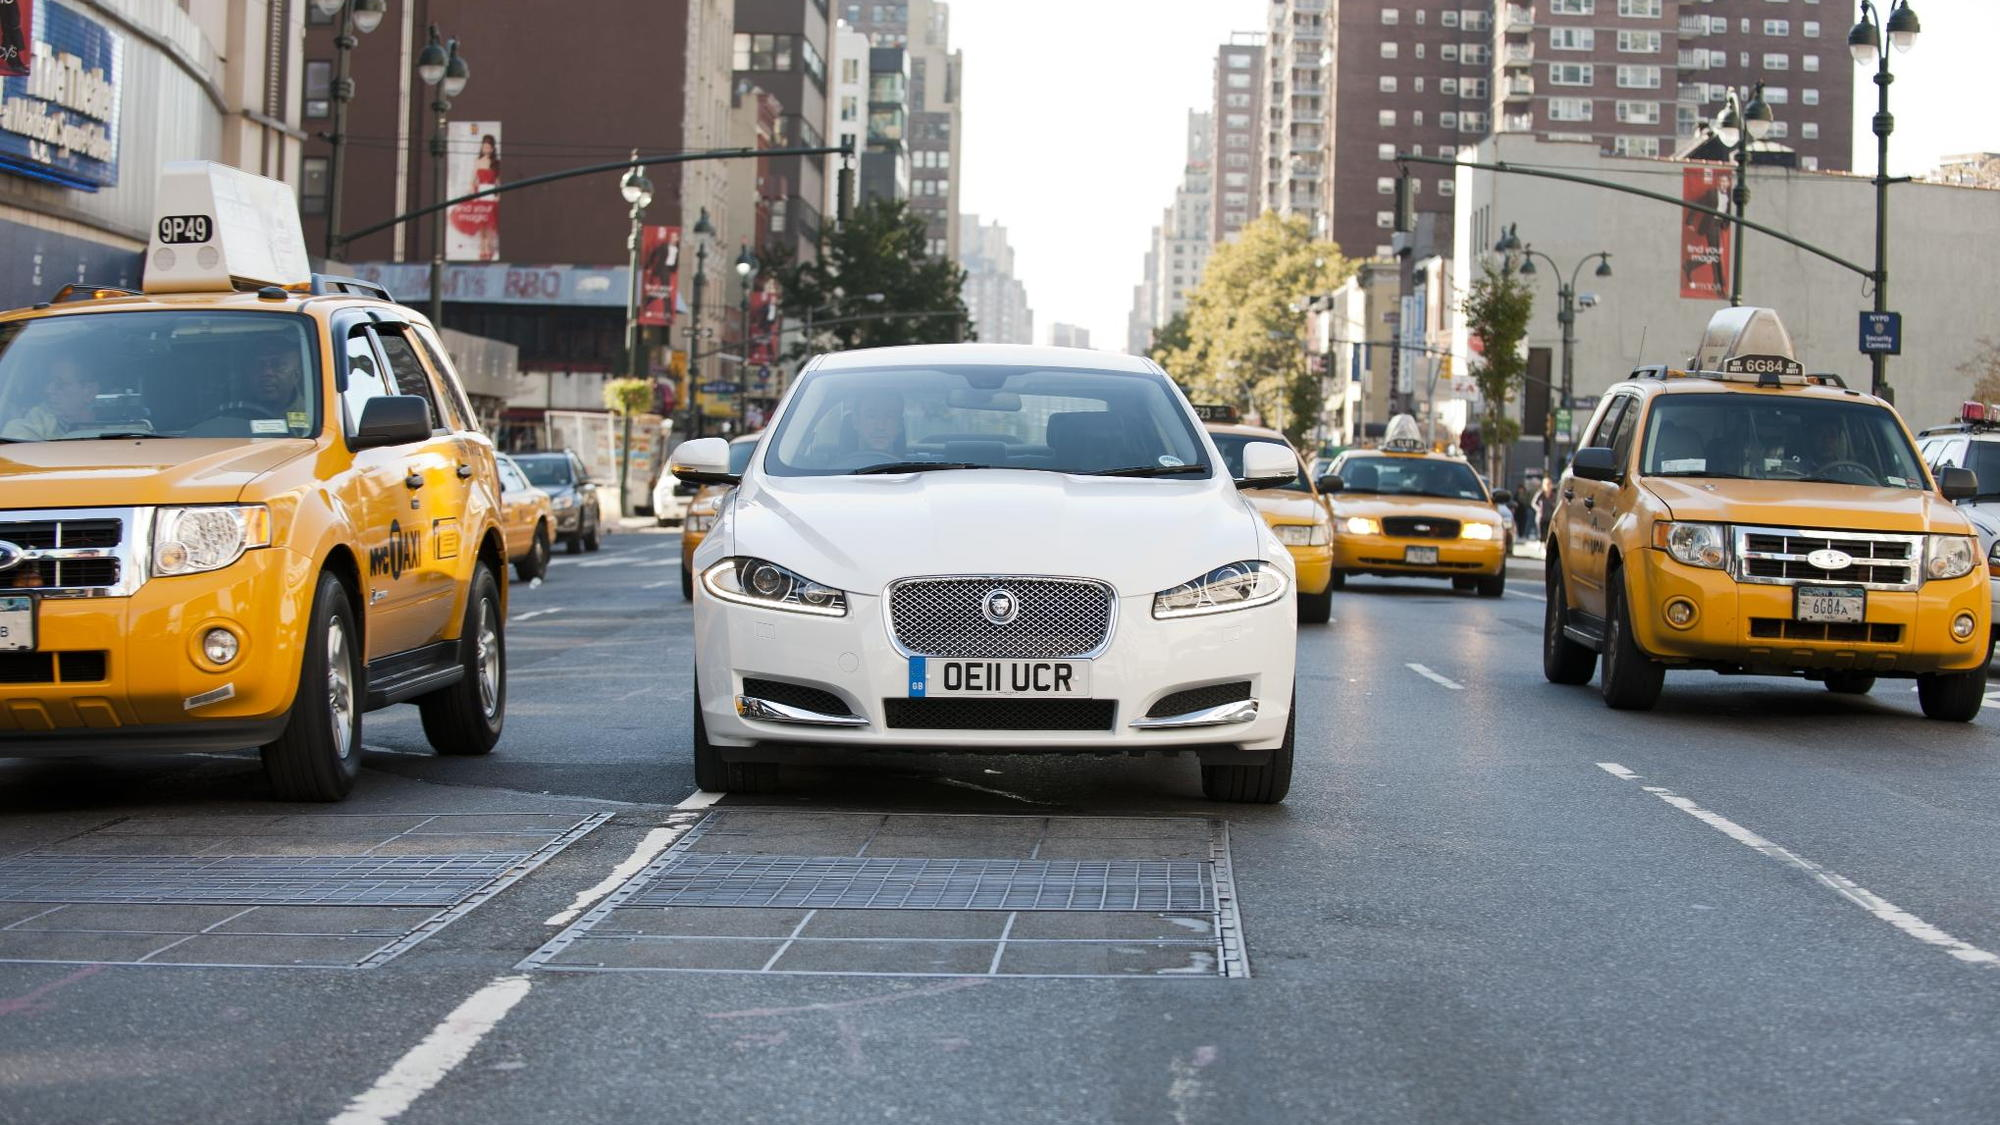 Jaguar XF 2.2 Diesel, New York to L.A. tour